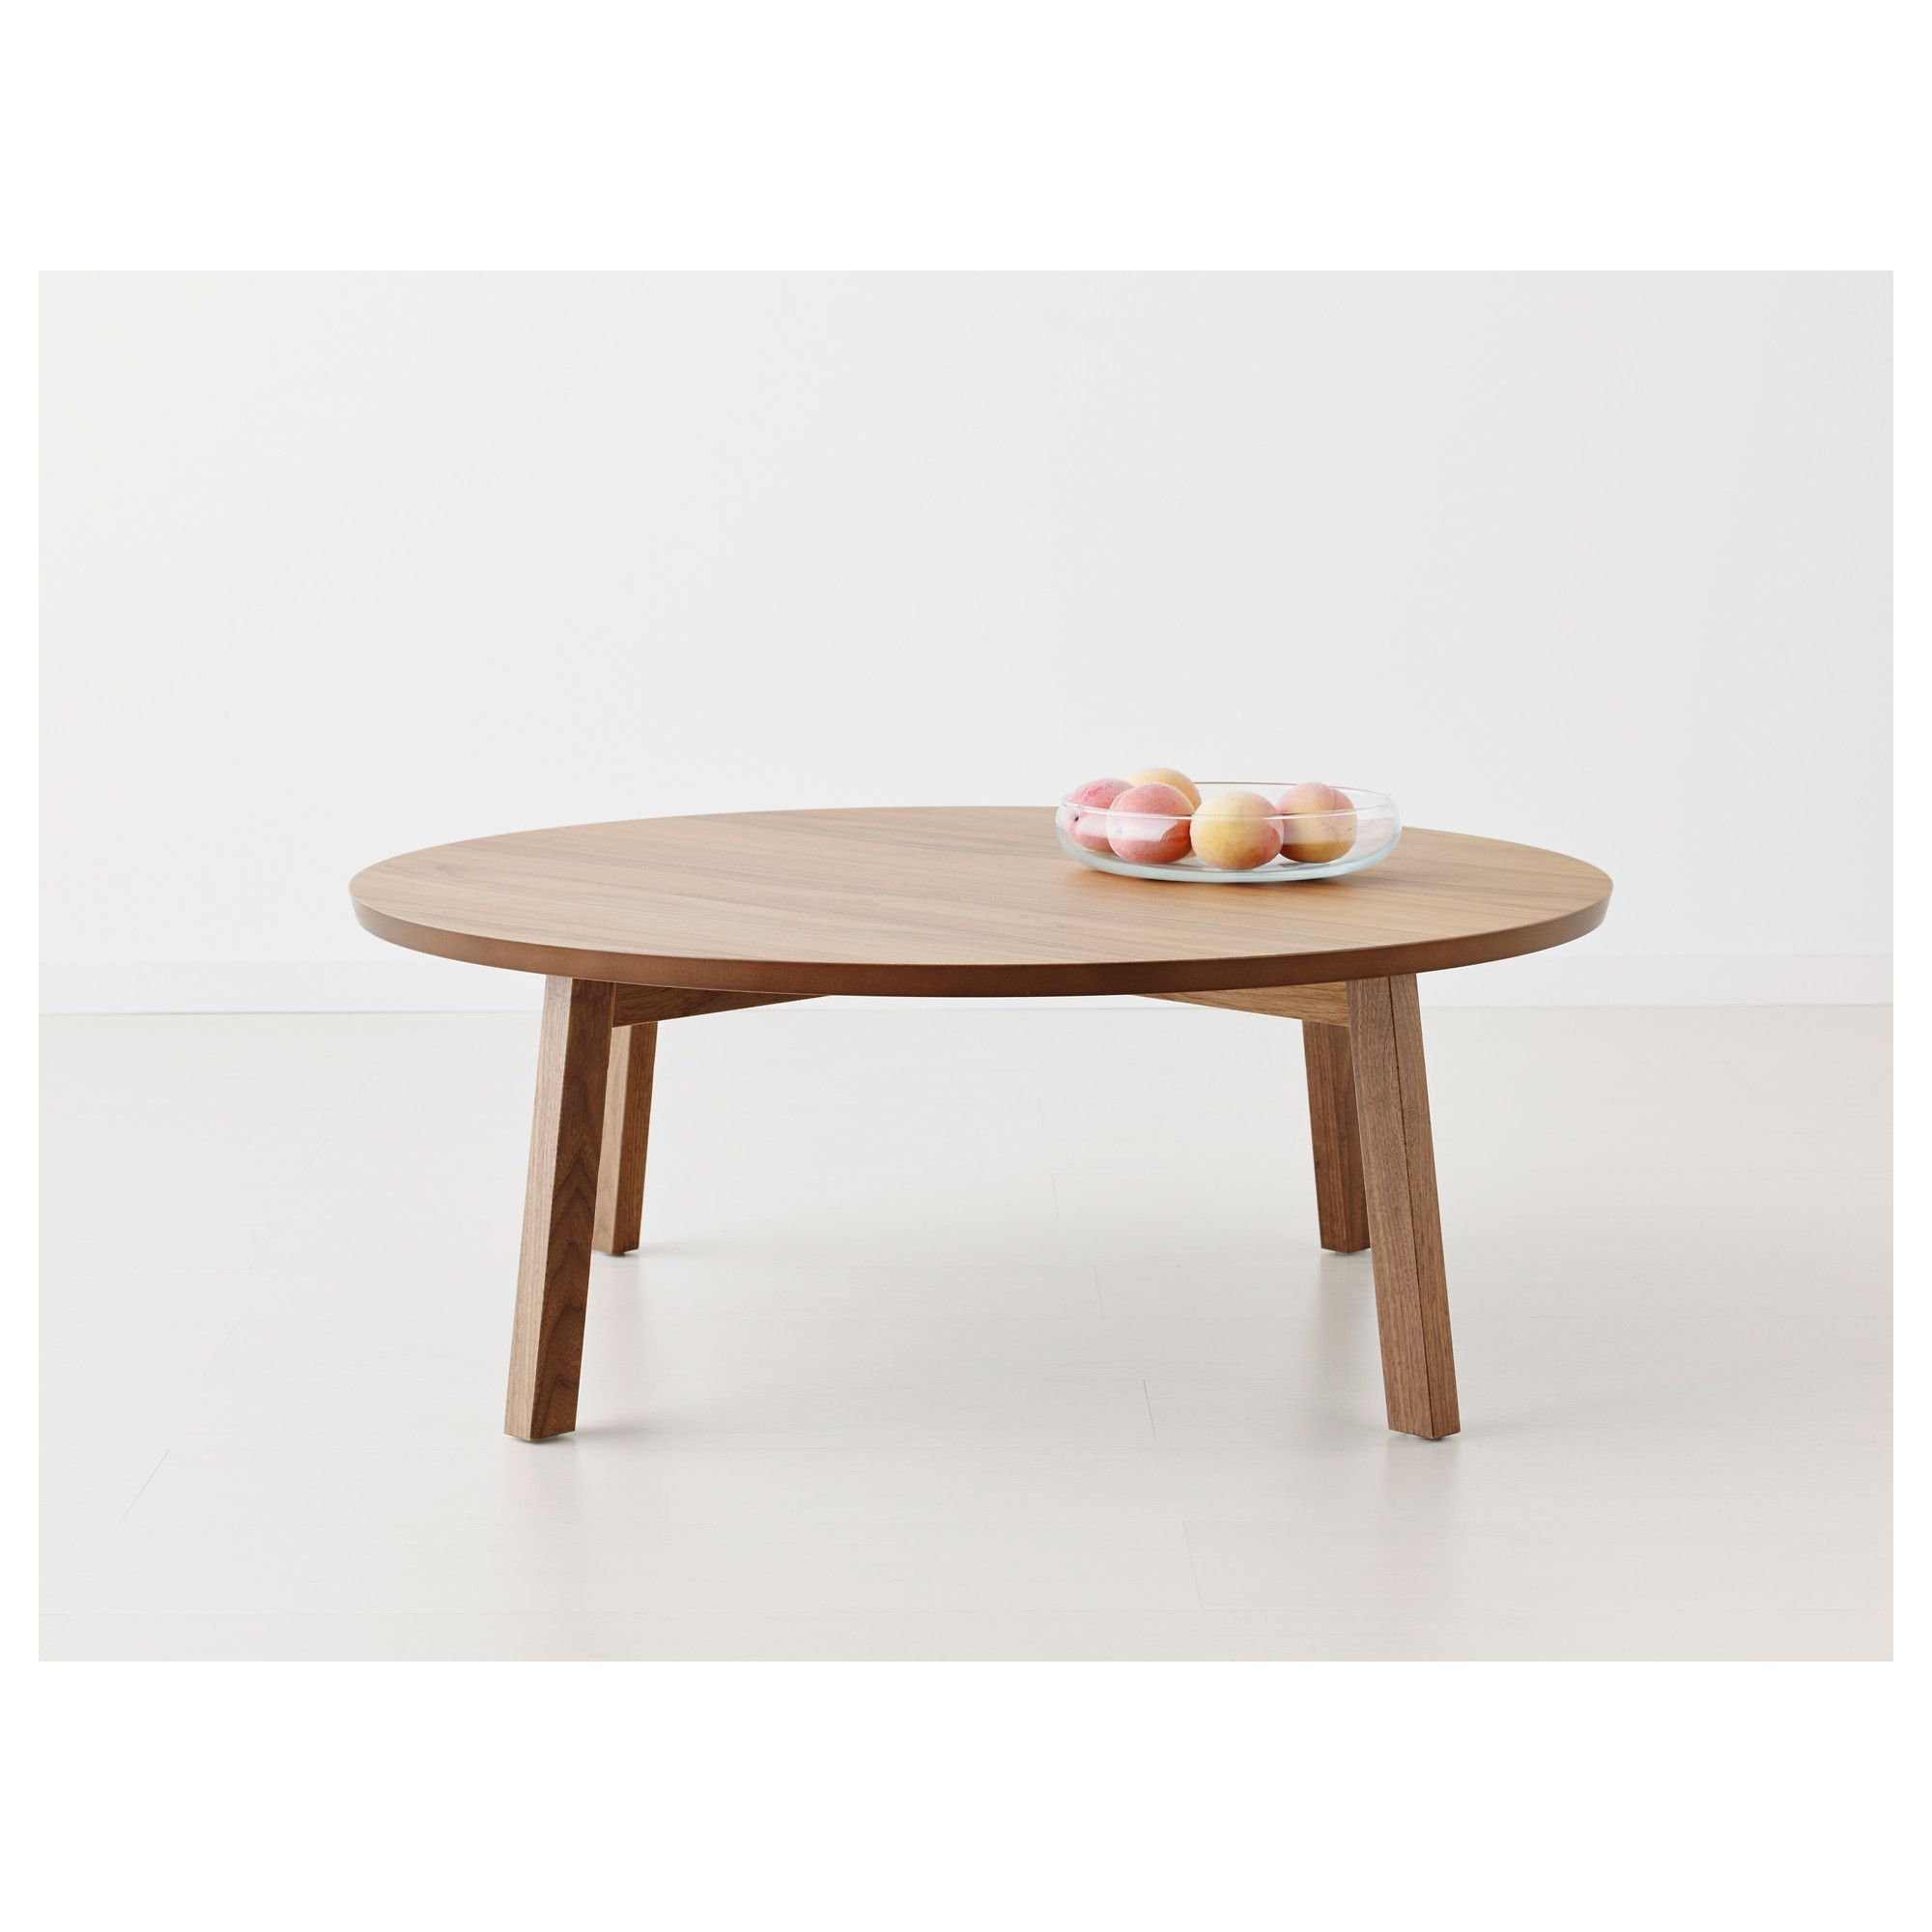 Stockholm sofa table image collections table design ideas stockholm 93 ikea ikea ikea stockholm coffee table the table surface in walnut veneer and legs geotapseo Image collections